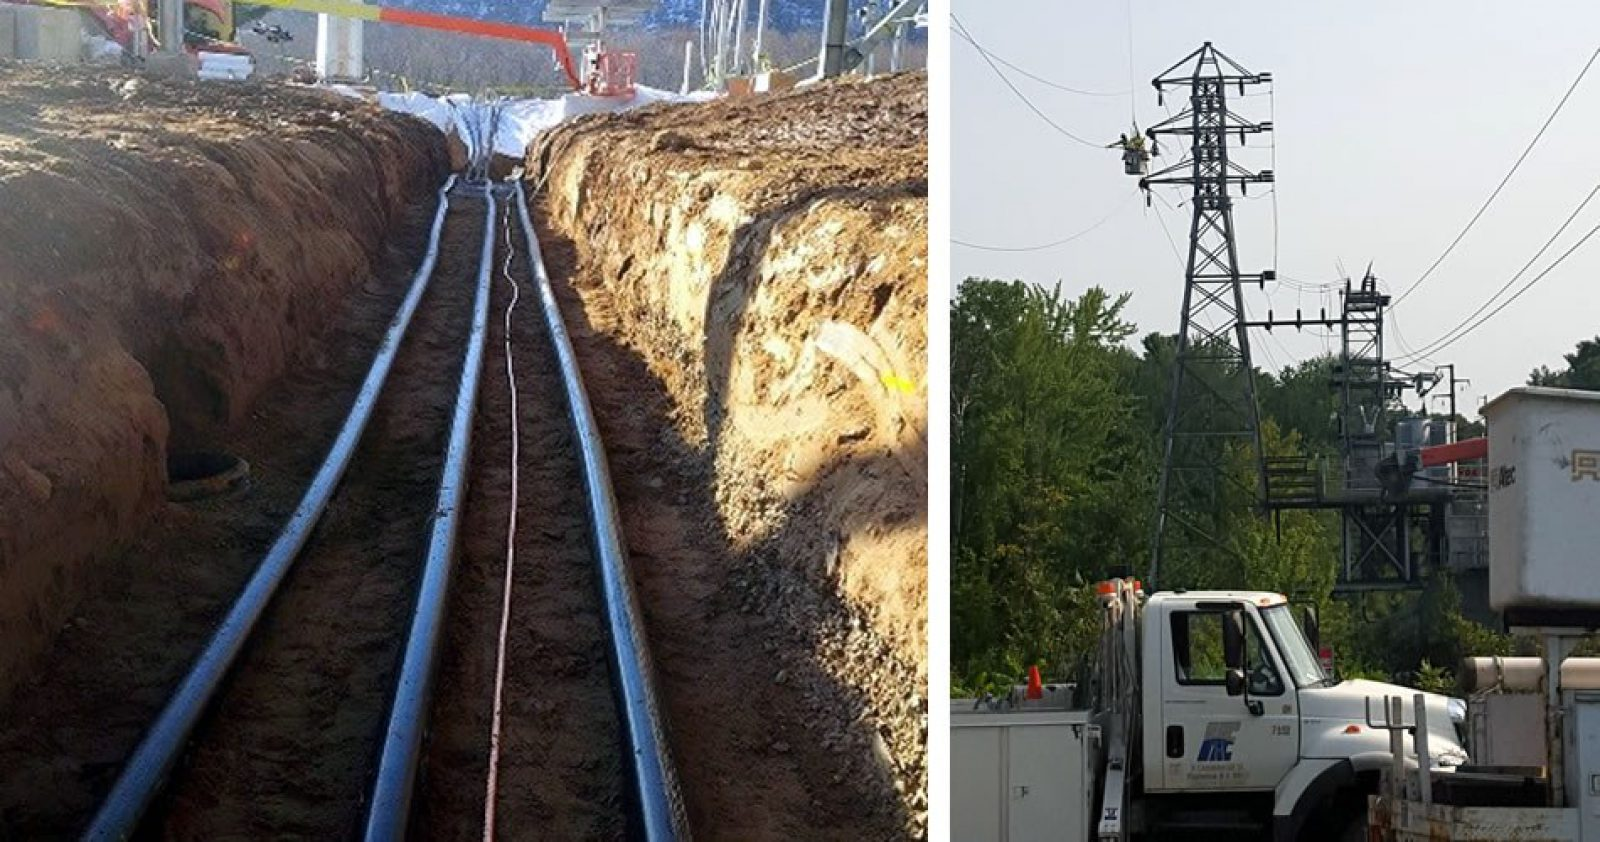 Haugland Group Overhead Vs Underground Power Lines